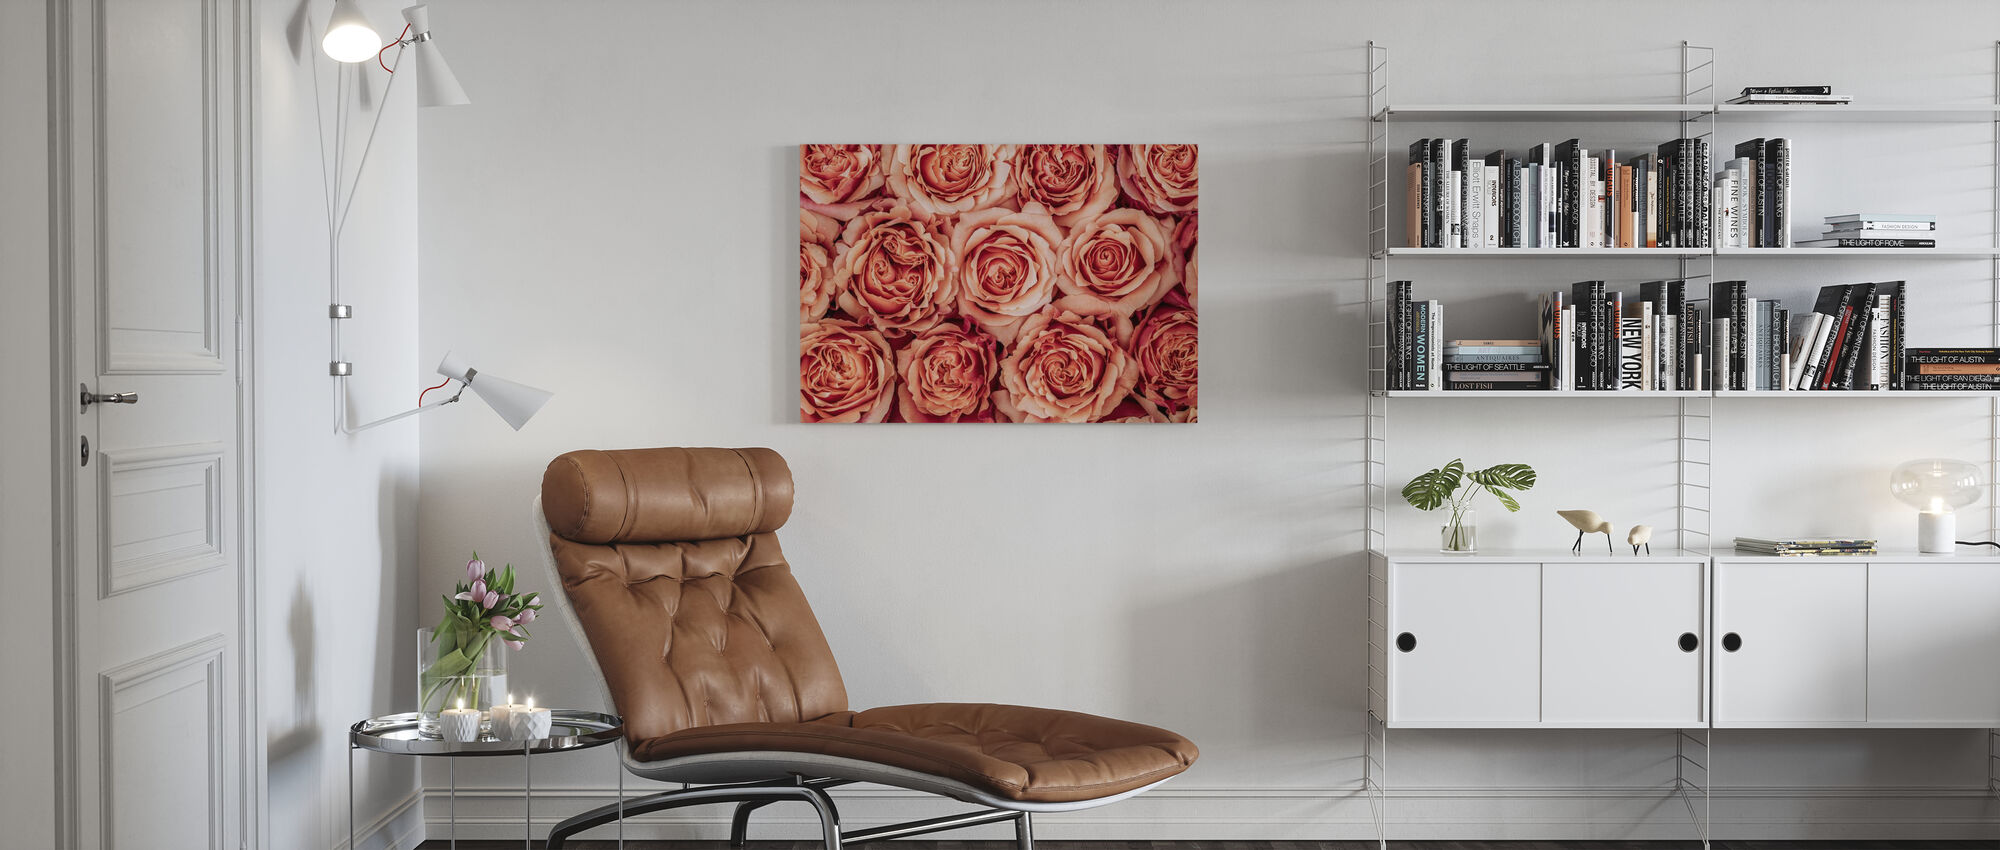 Roses - Canvas print - Living Room